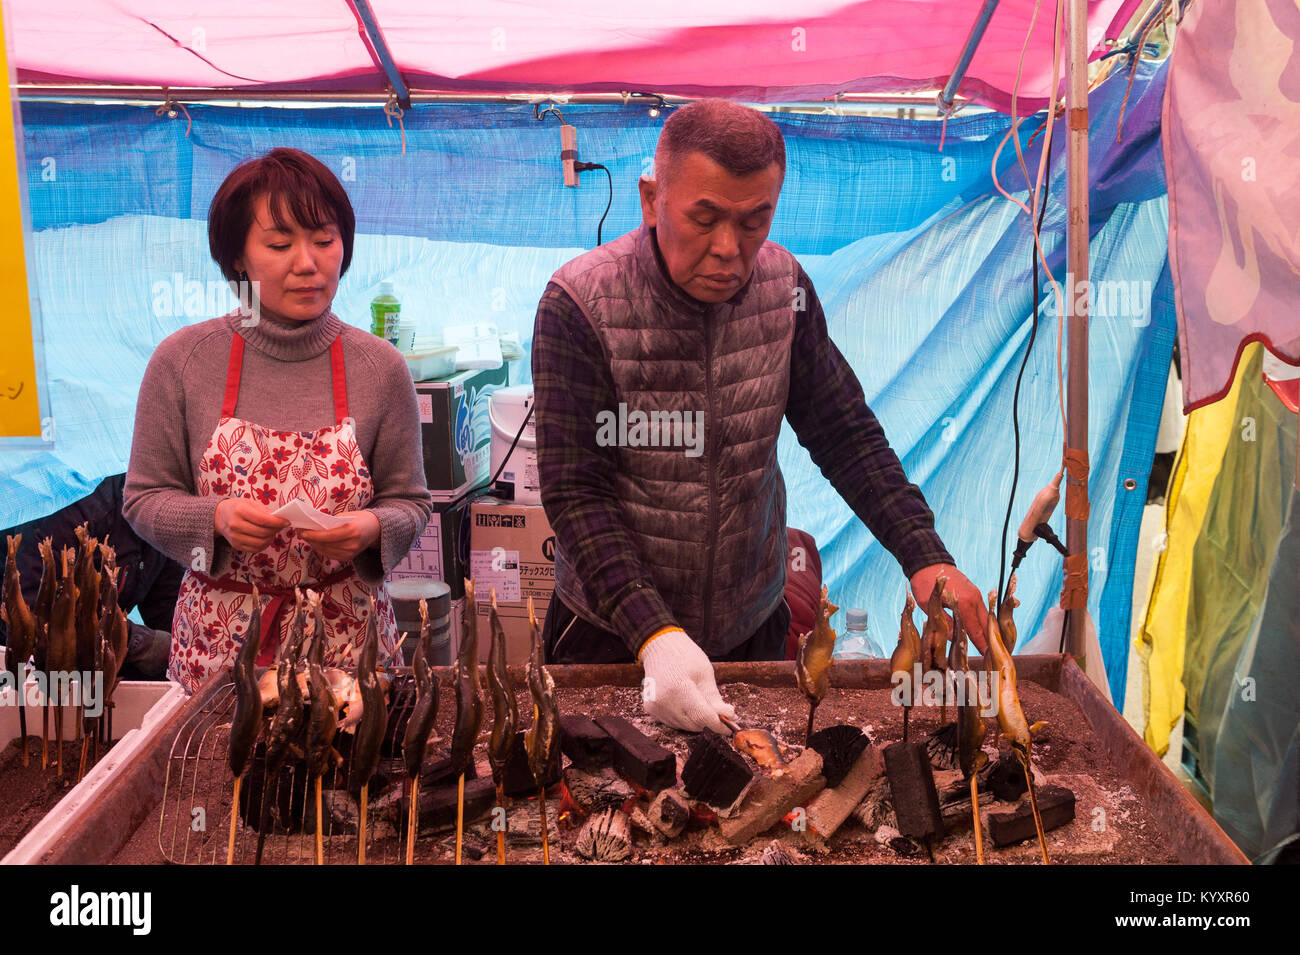 31.12.2017, Tokyo, Japan, Asia - A man prepares freshly roasted fish skewers at a street stall in Tokyo's city district Stock Photo